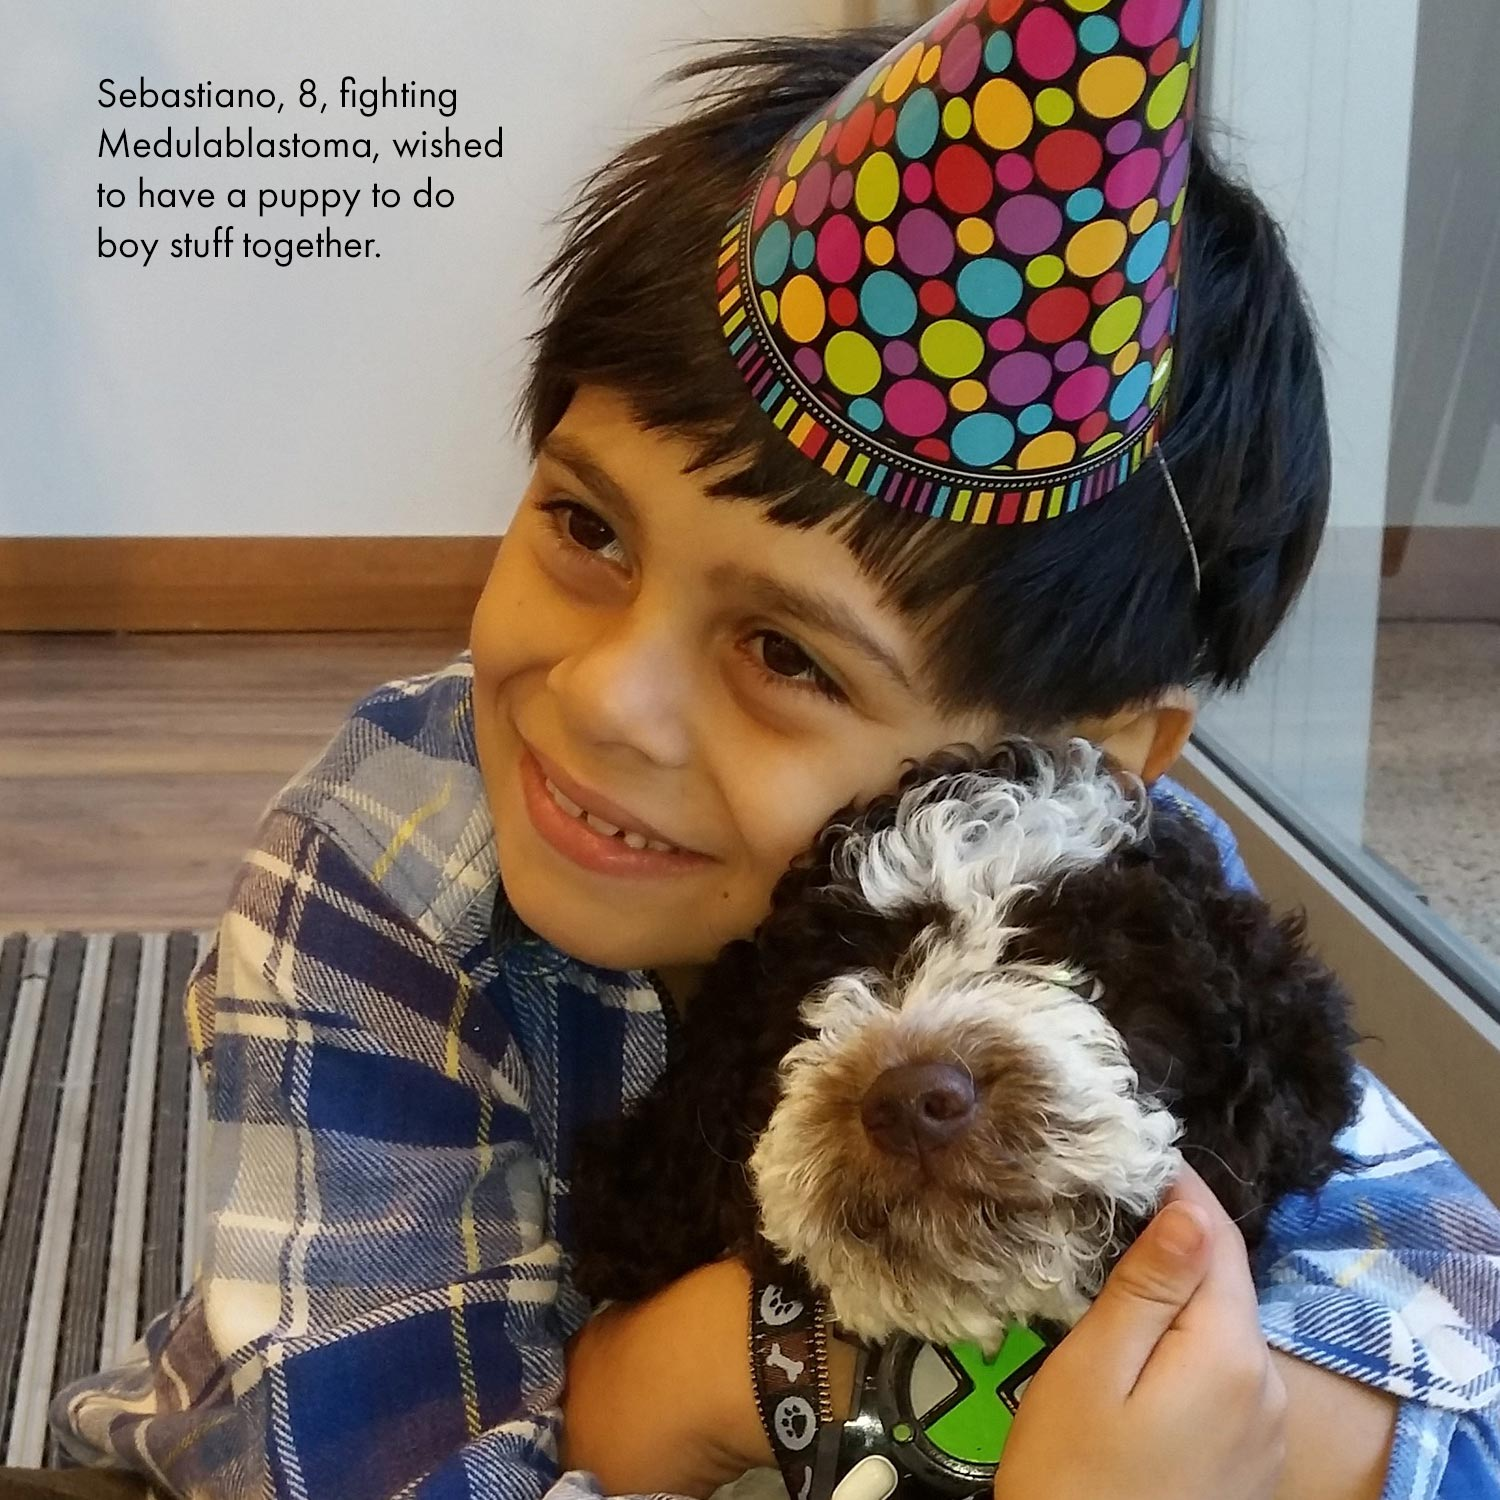 Little boy in a party hat hugging a dog